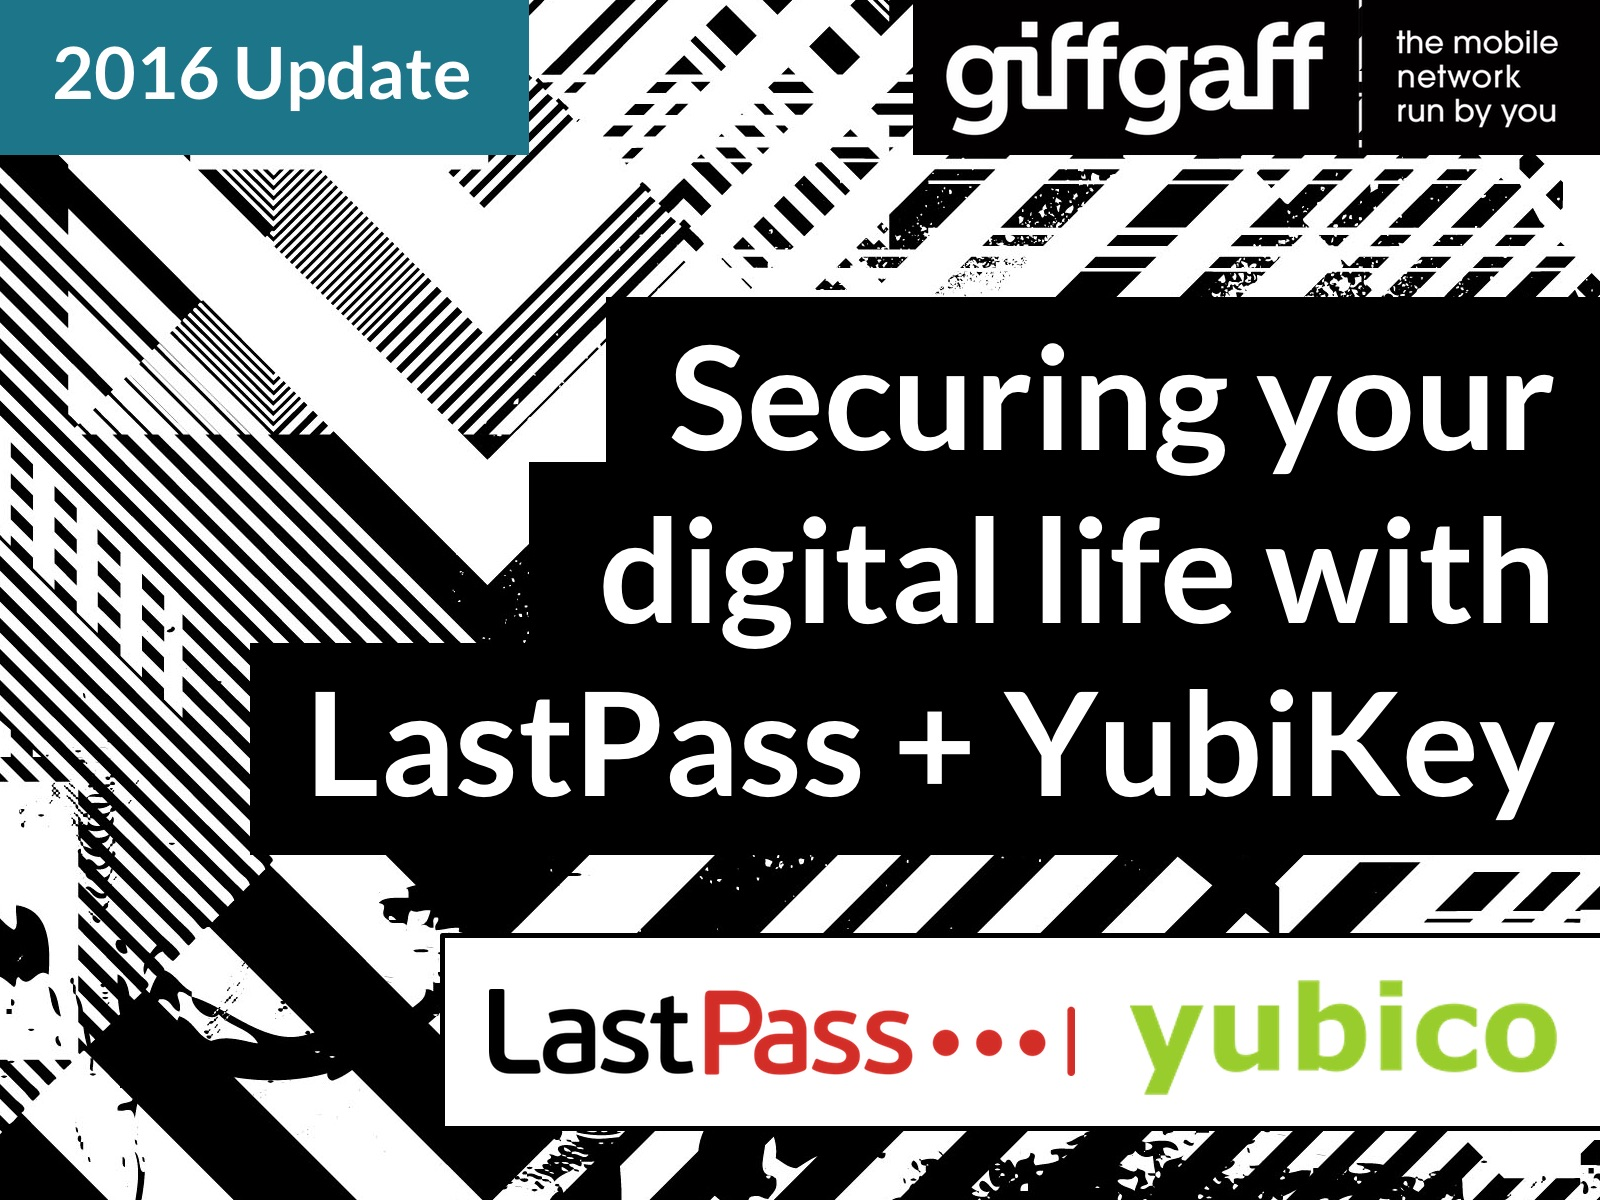 Securing your digital life with LastPass + YubiKey